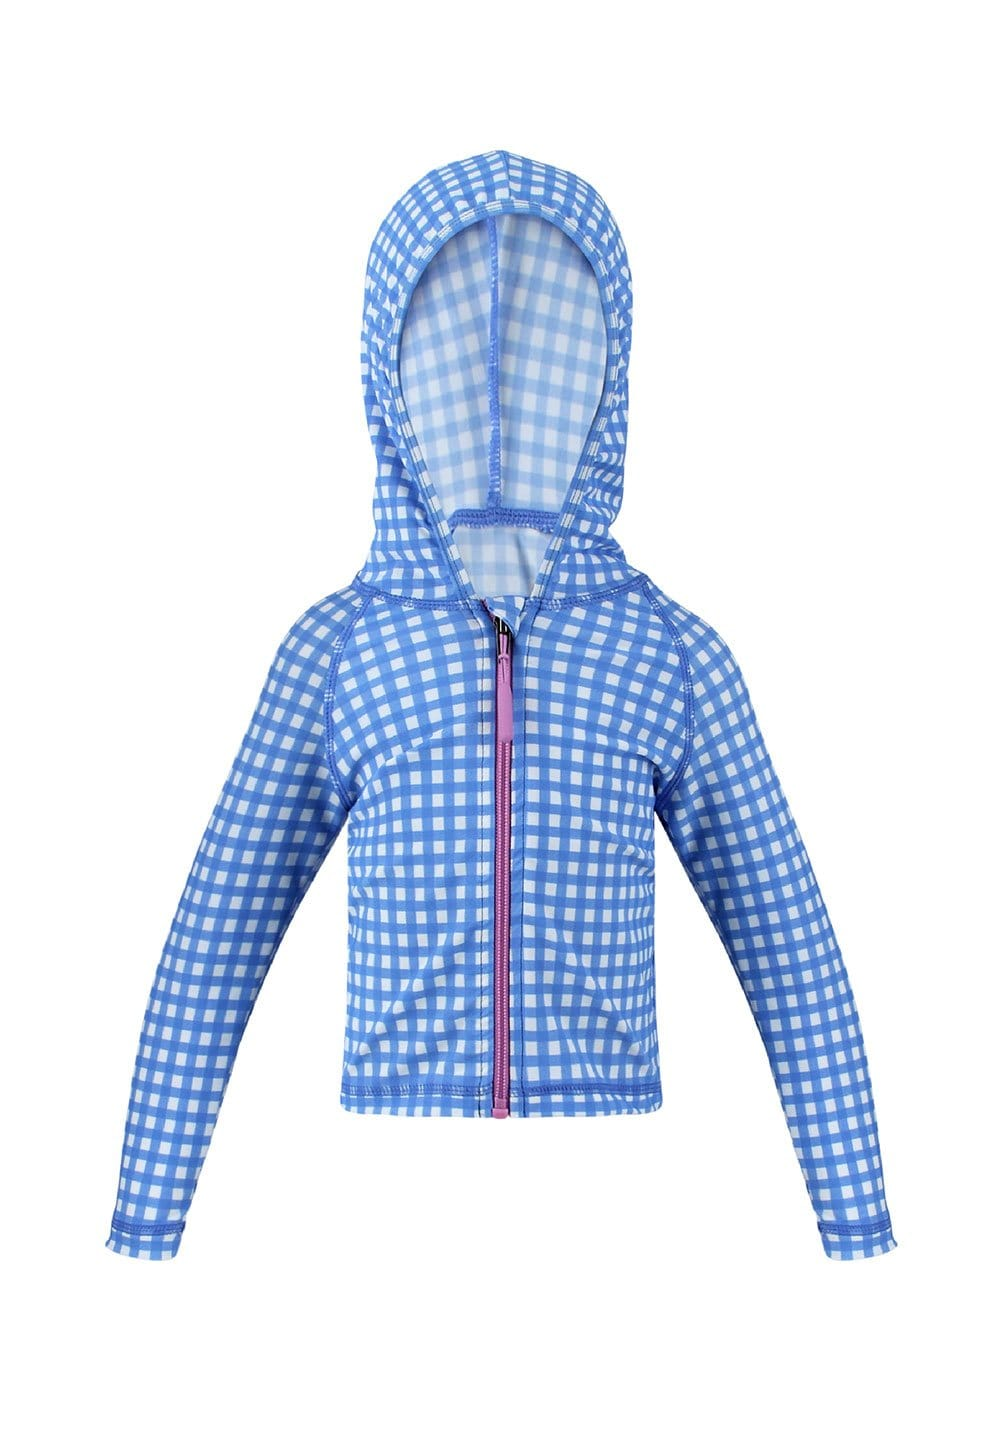 FUNFIT UPF50+ Junior Hoodie (Unisex) in Gingham Summer Print